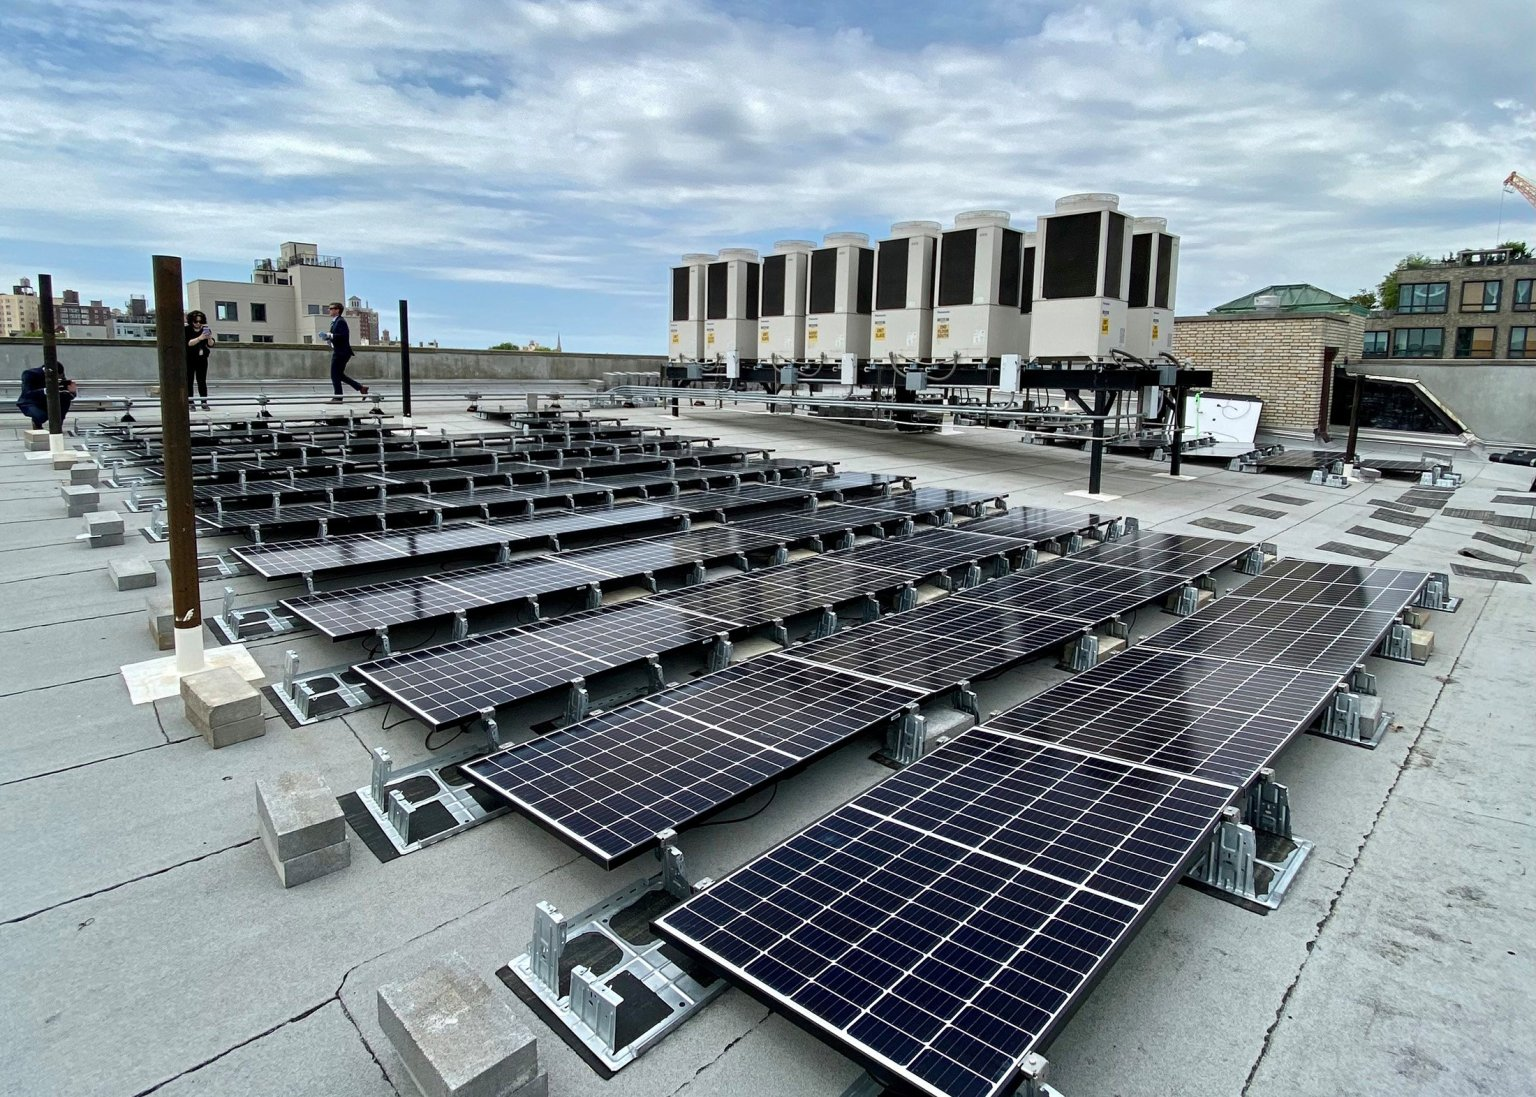 Catholic Charities of Brooklyn and Queens, one of the largest faith-based affordable housing providers, has launched a solar-energy project across its existing 44 buildings.